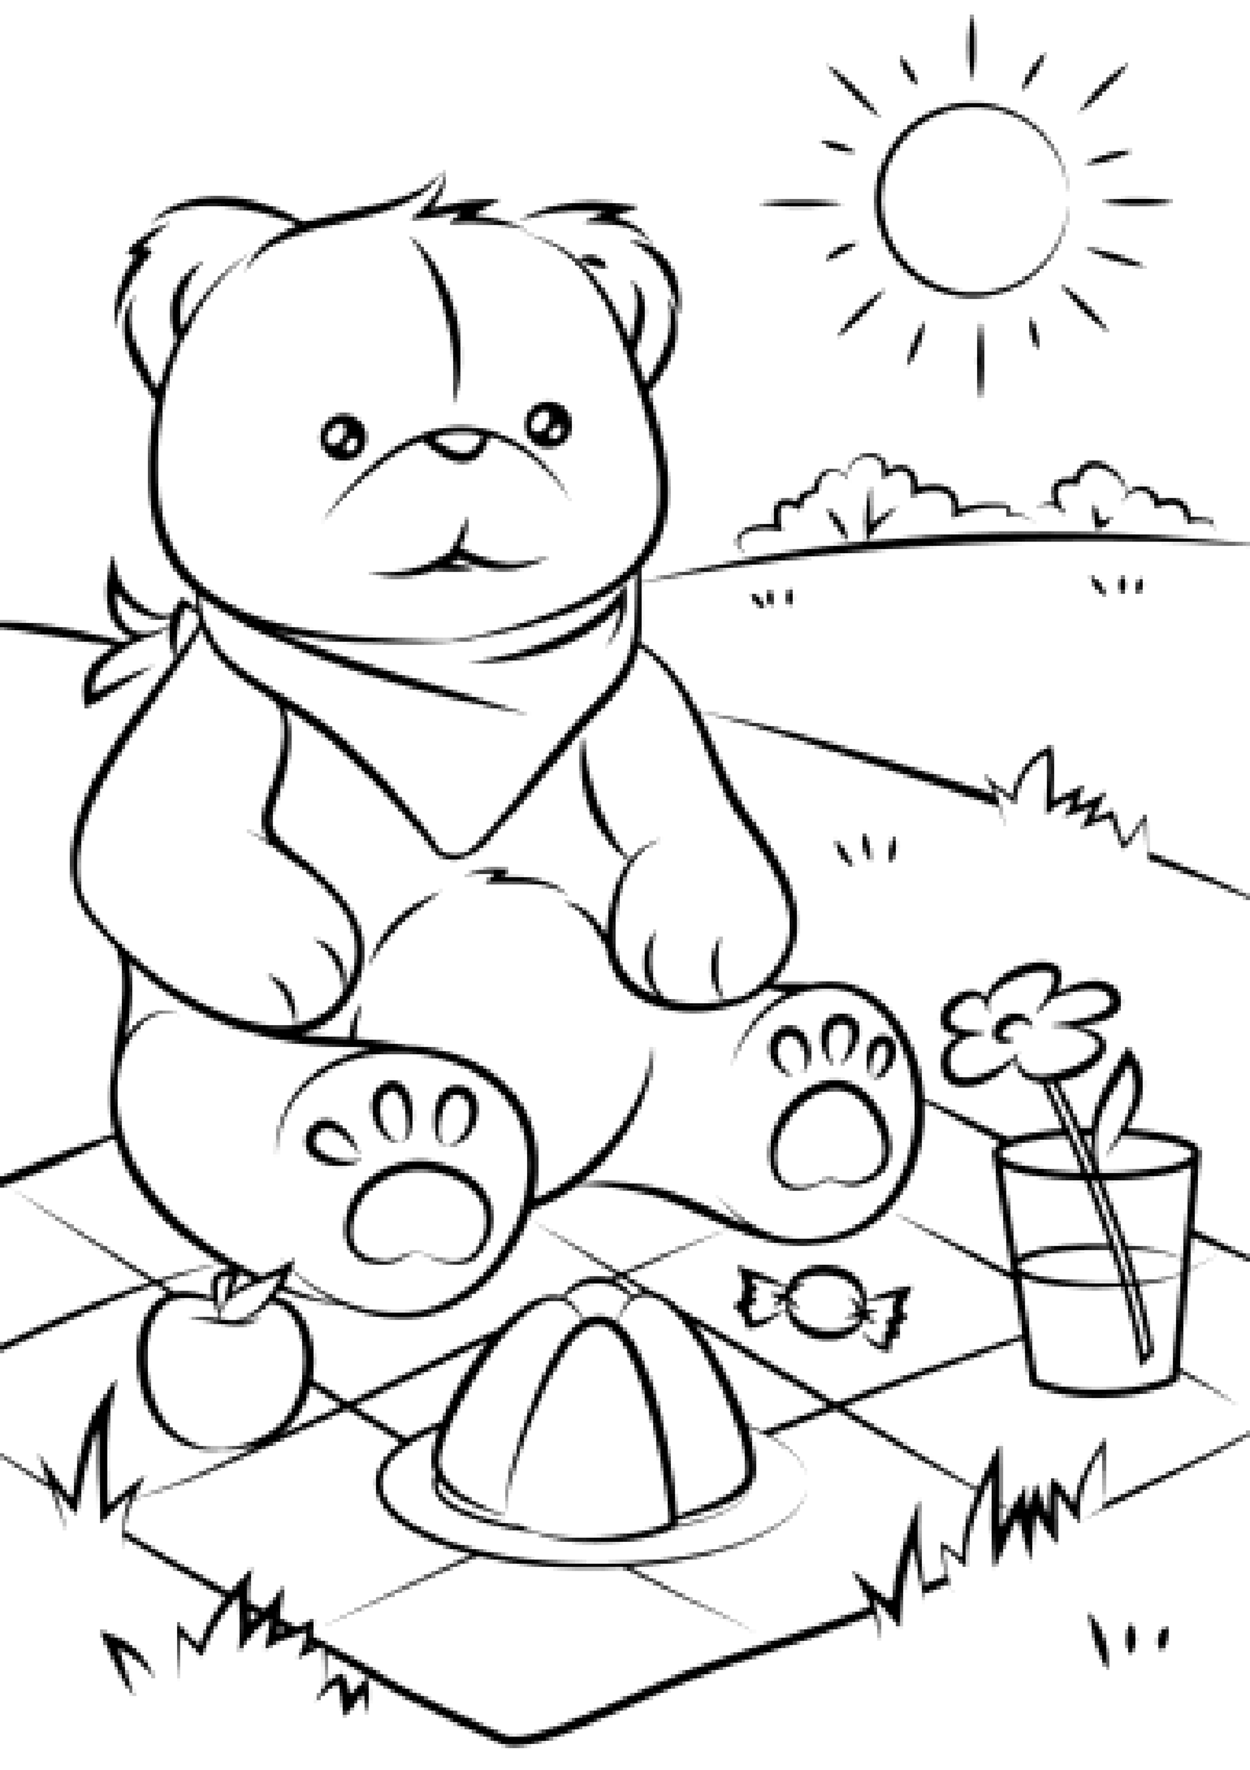 Bears to download - Bears Kids Coloring Pages